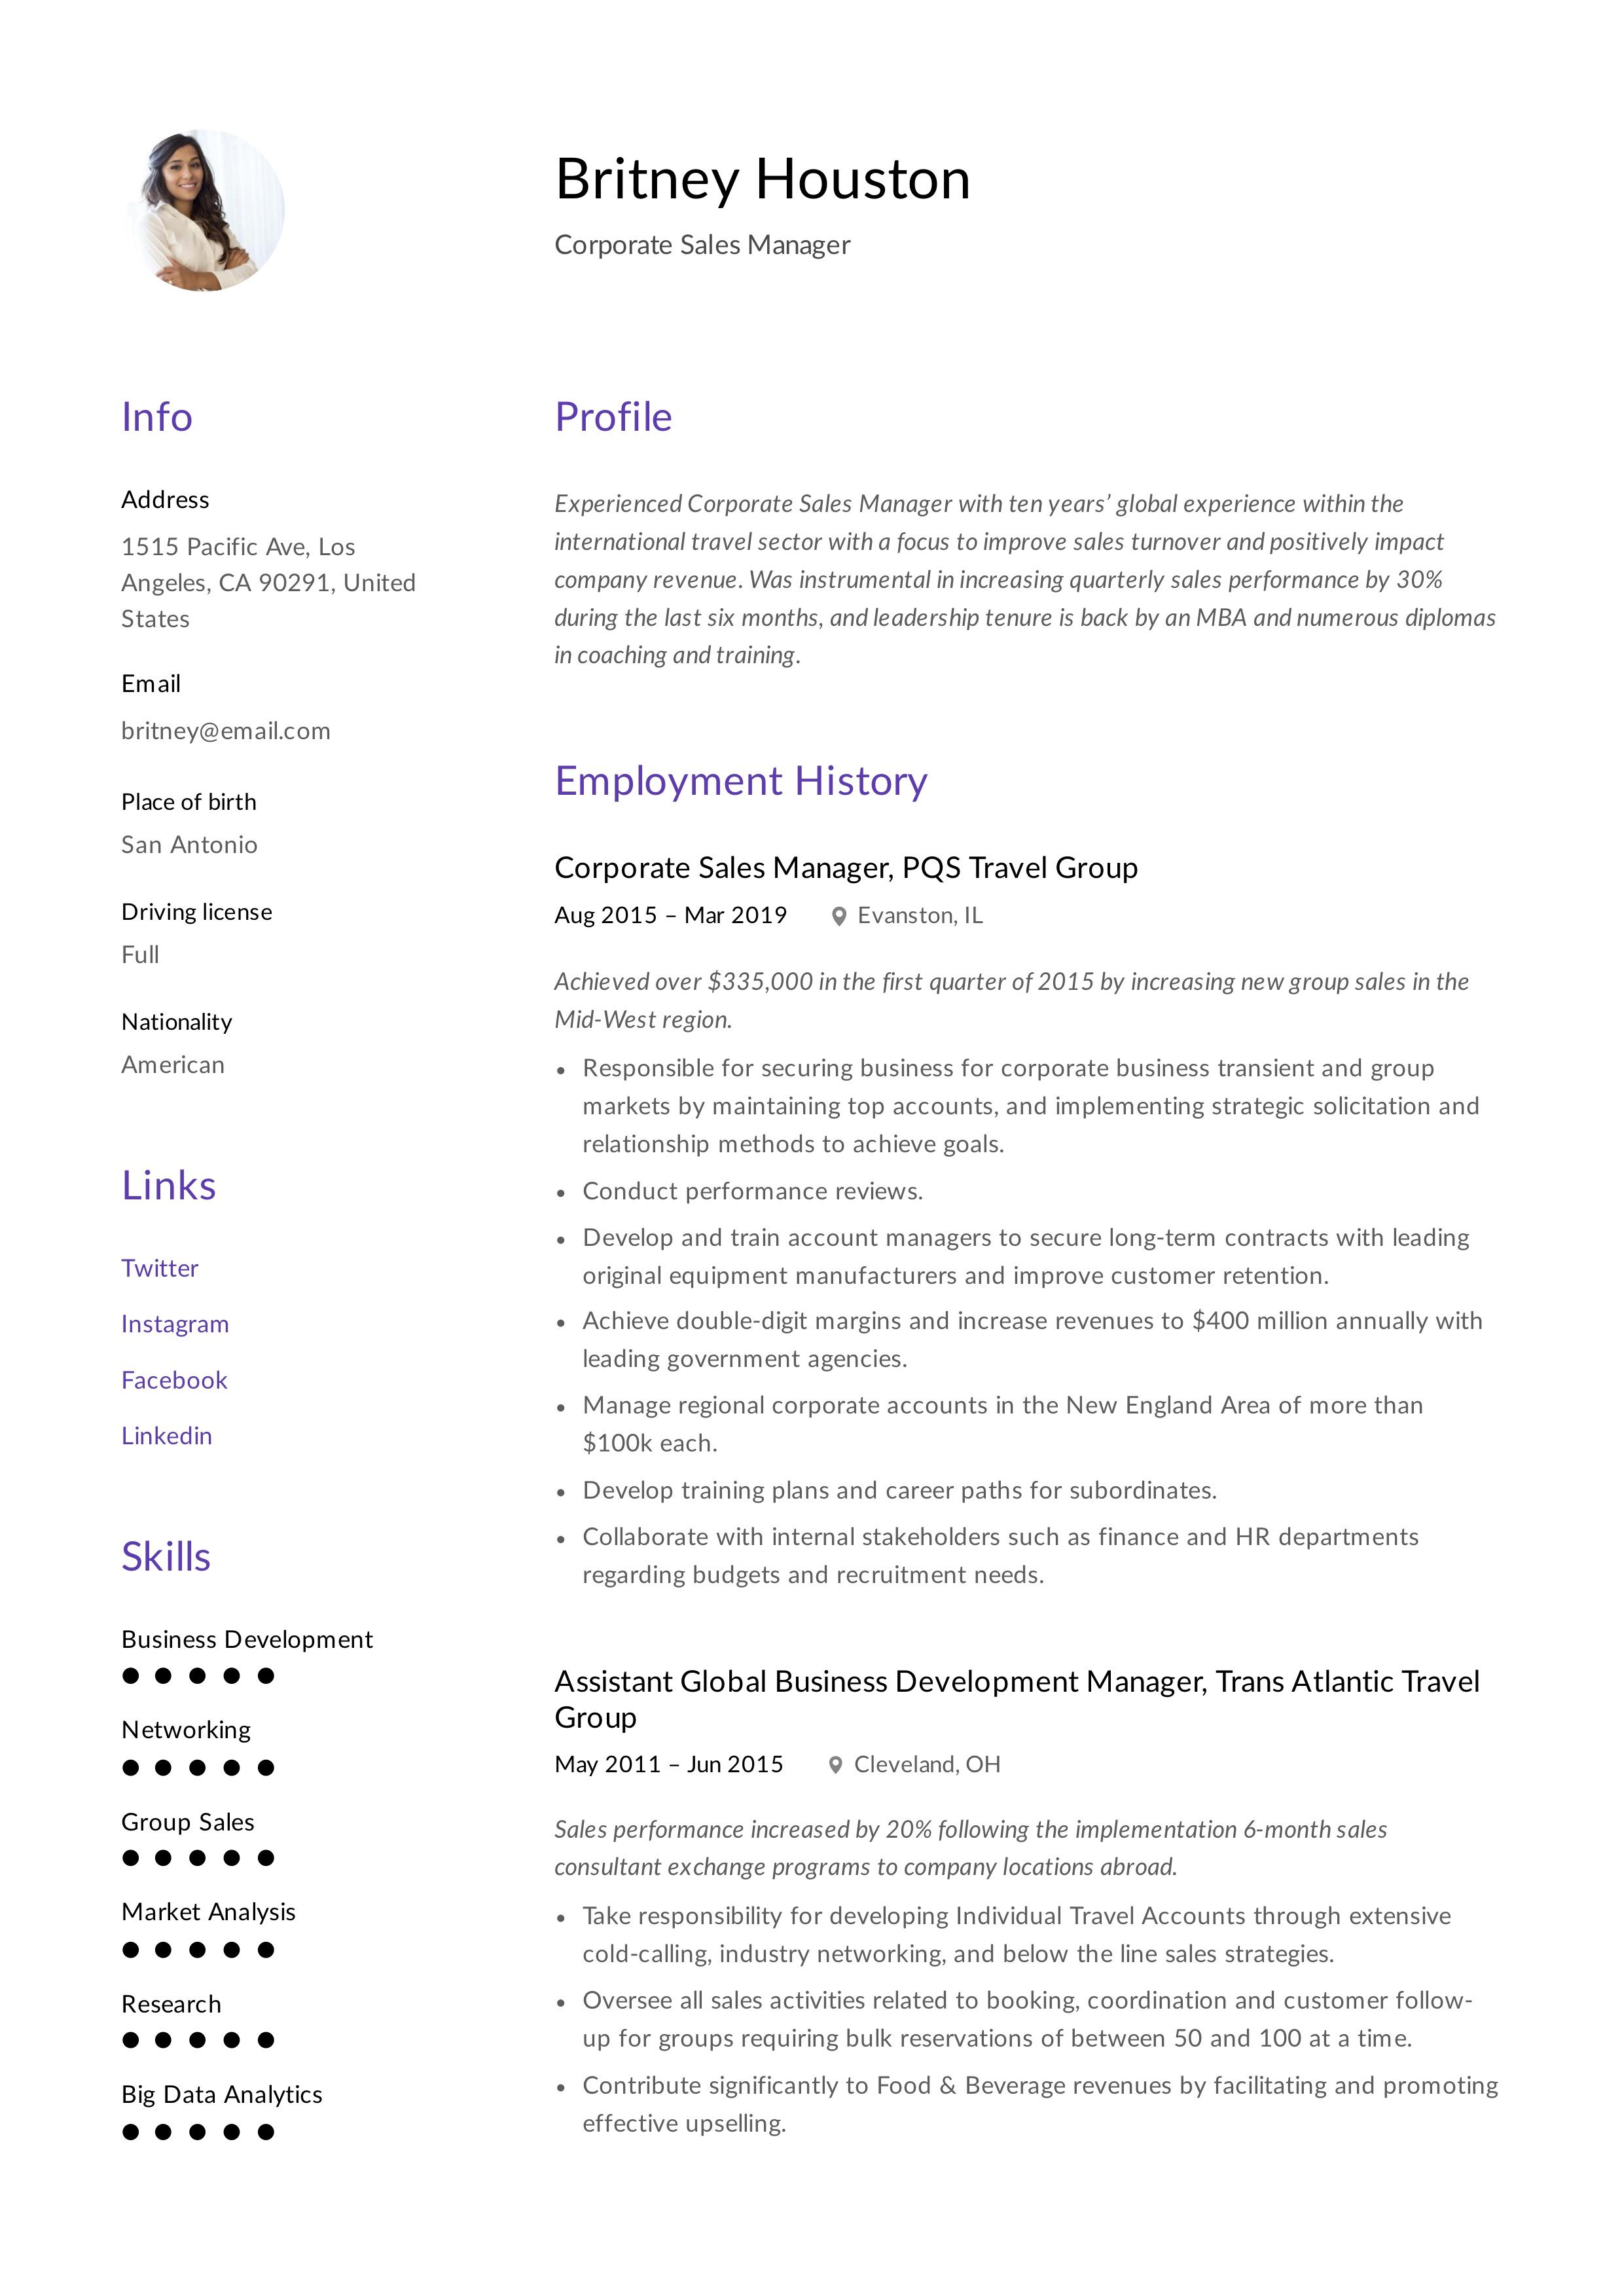 Corporate Sales Manager Resume Template Manager Resume Resume Skills Resume Guide